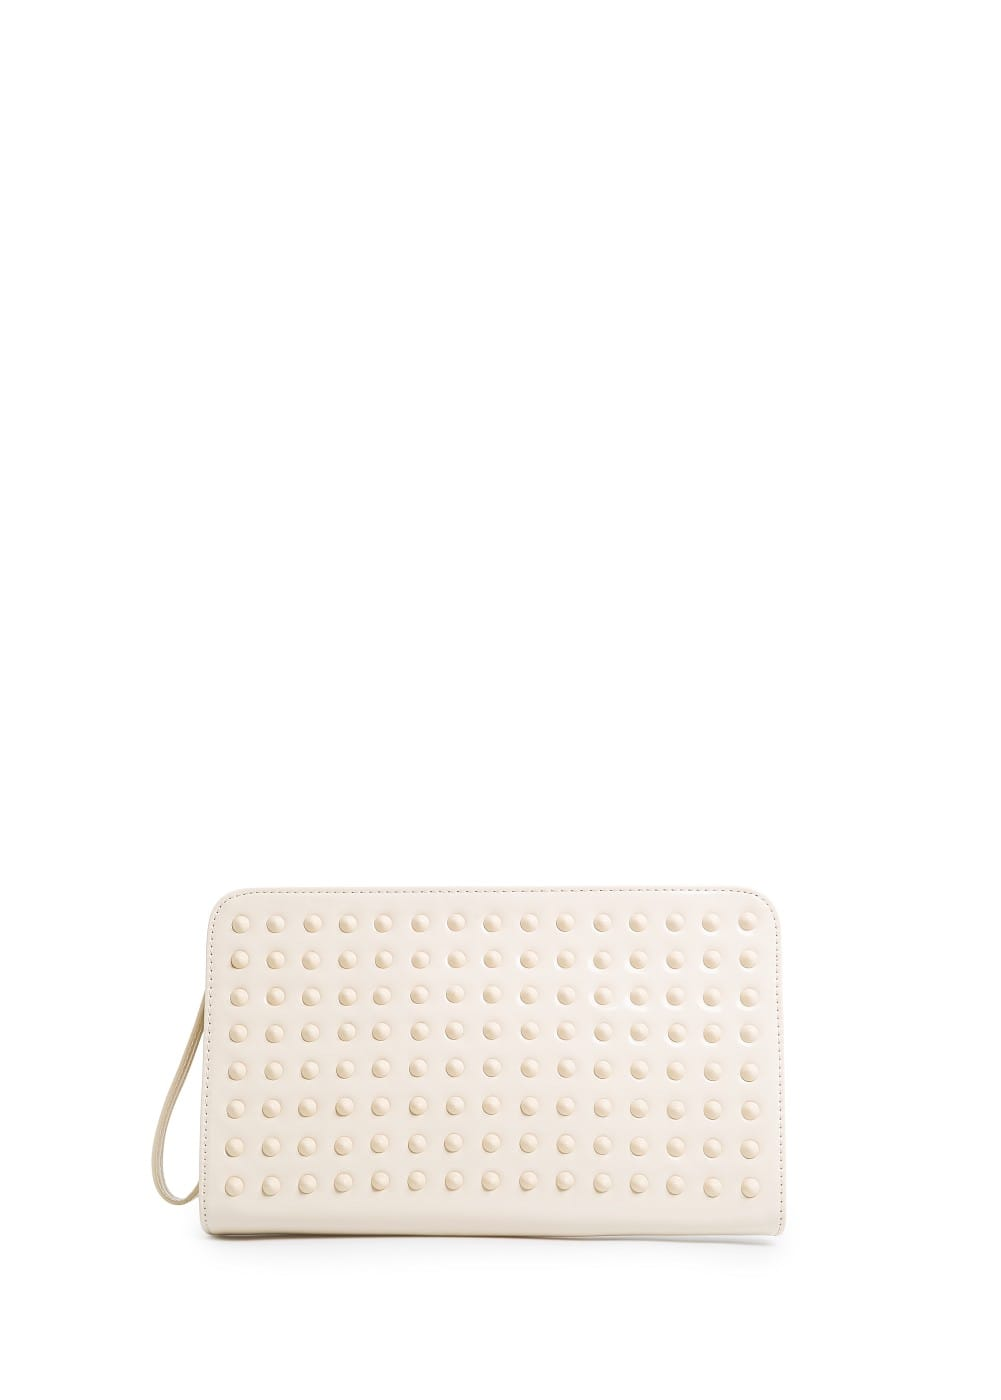 SHINY FINISH STUDDED CLUTCH